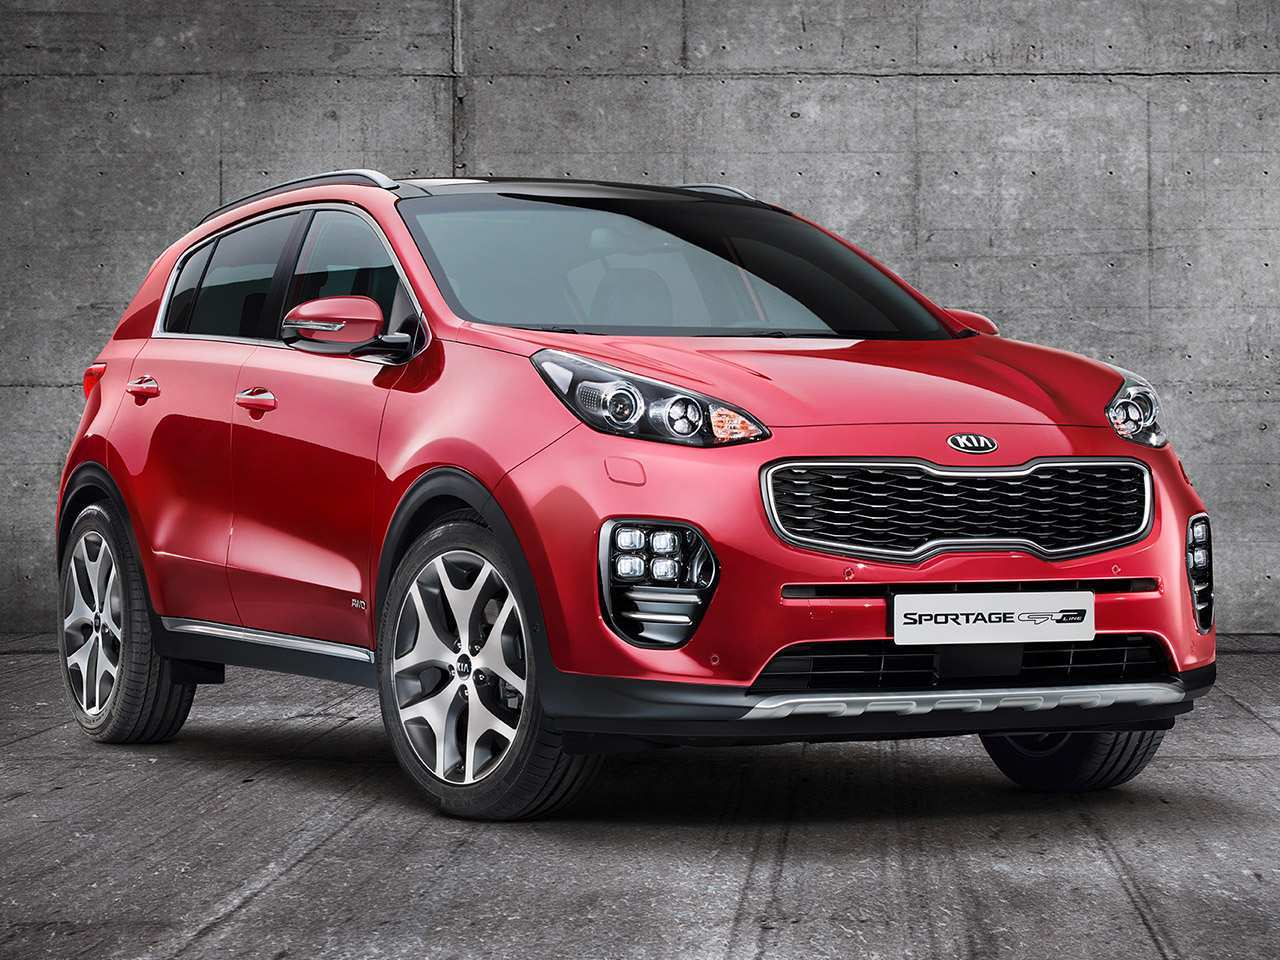 78 The Best Kia Sportage 2019 Vs 2020 Release Date And Concept